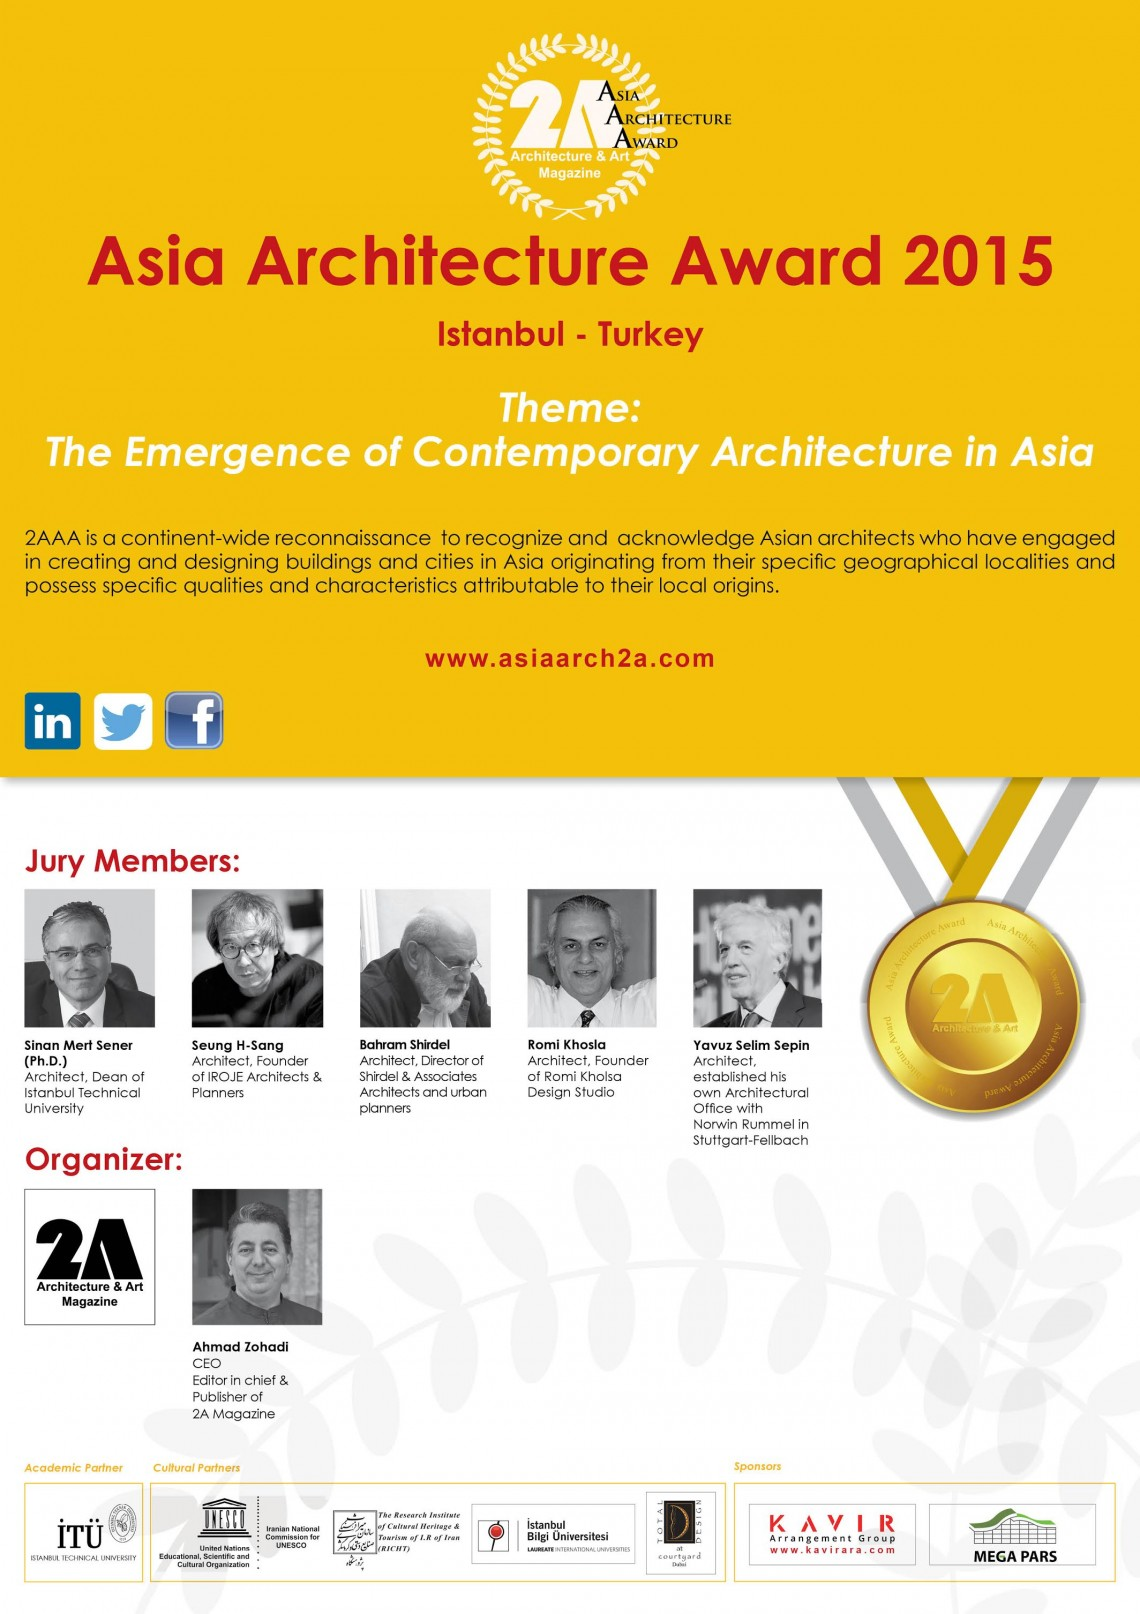 2A ASIA ARCHITECTURE AWARD & CONFERENCE & EXHIBITION